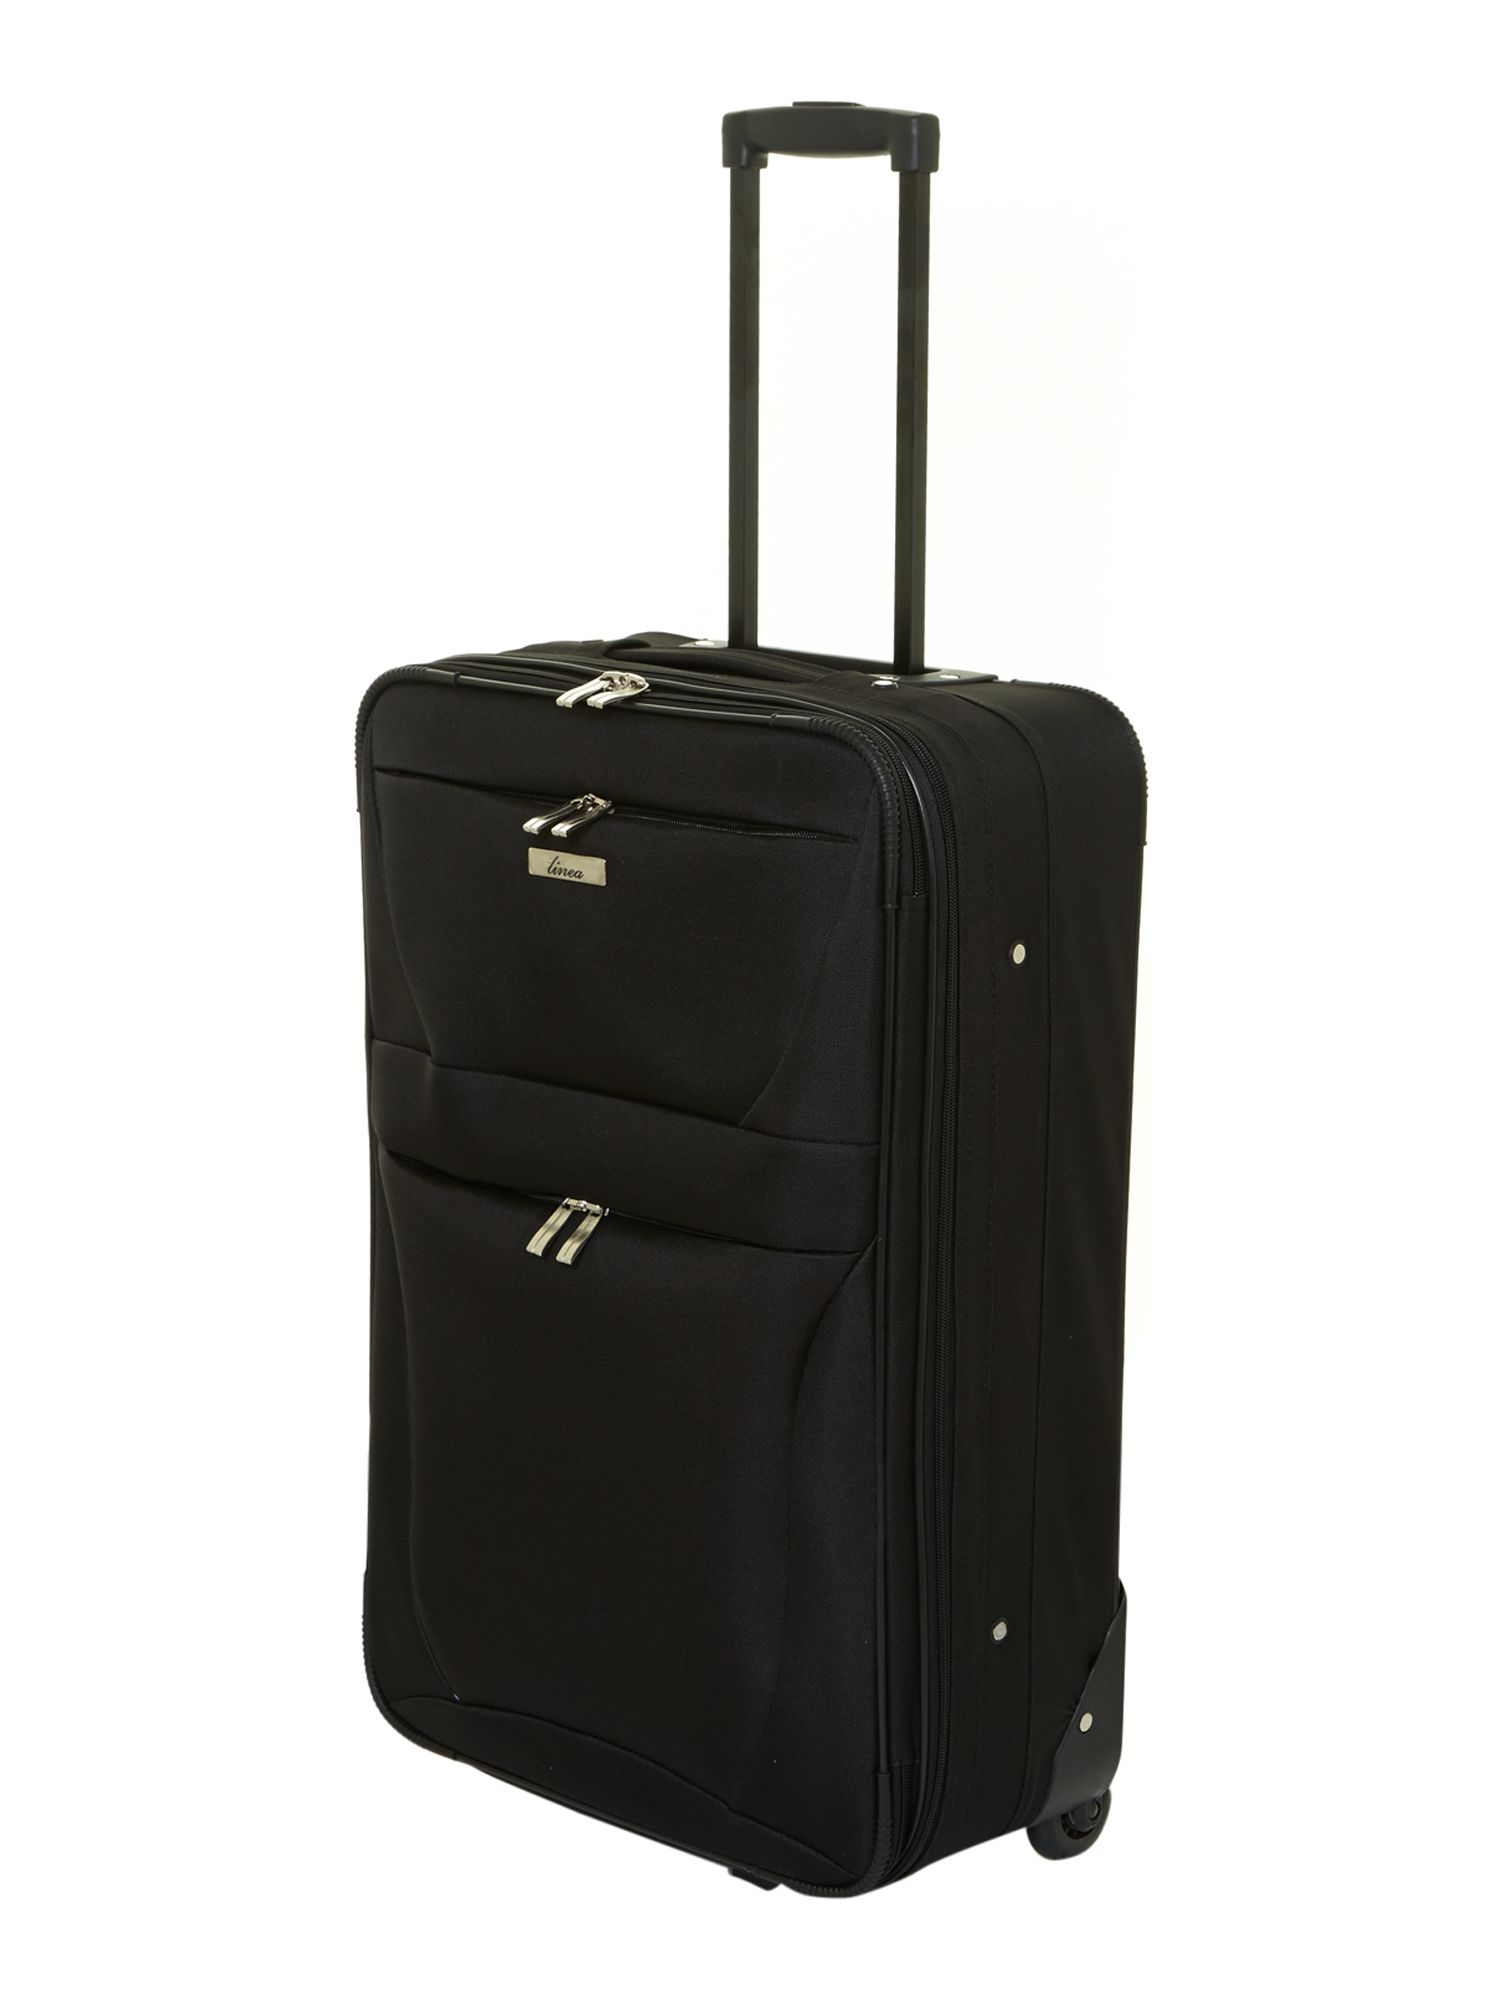 Phoenix black luggage range